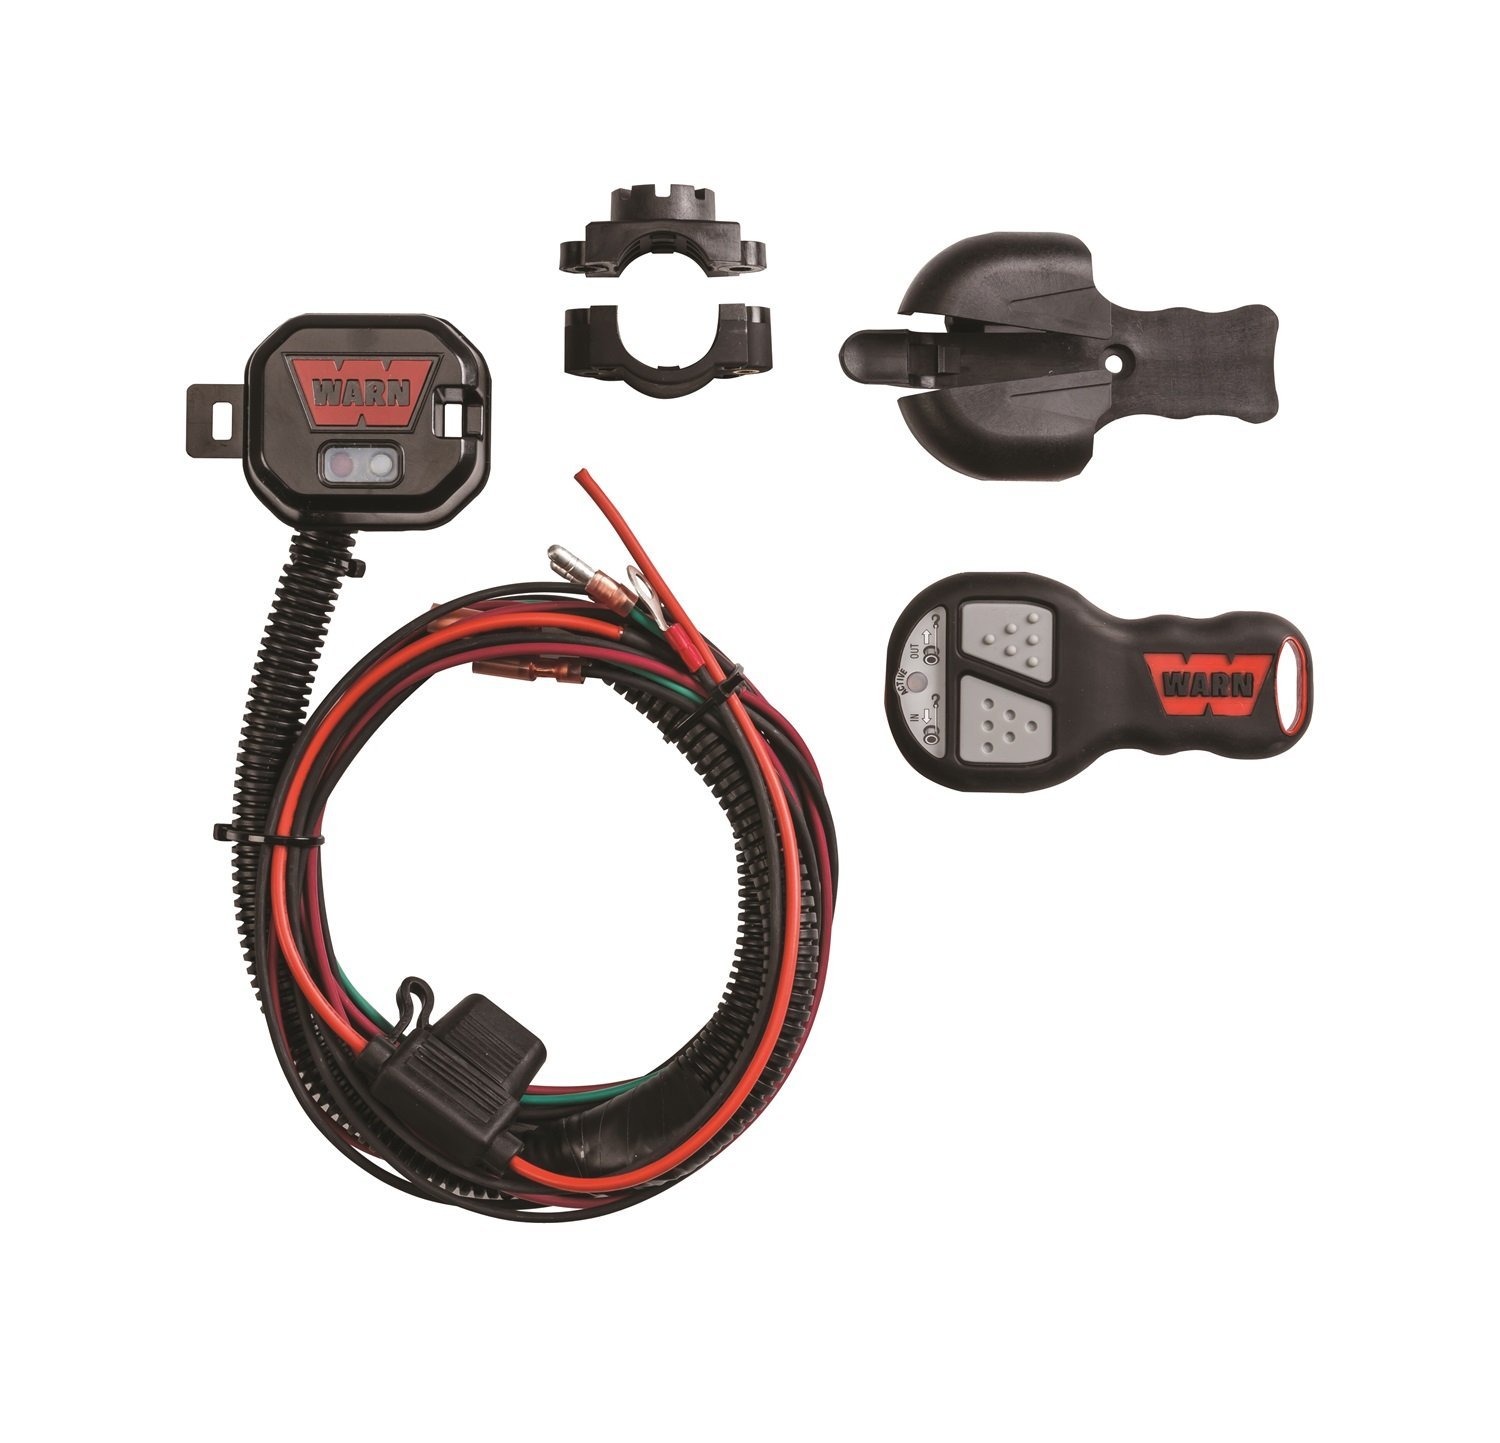 Warn 90288 Wireless Remote For Atv And Utv Automotive Winch Wiring Diagram 4500